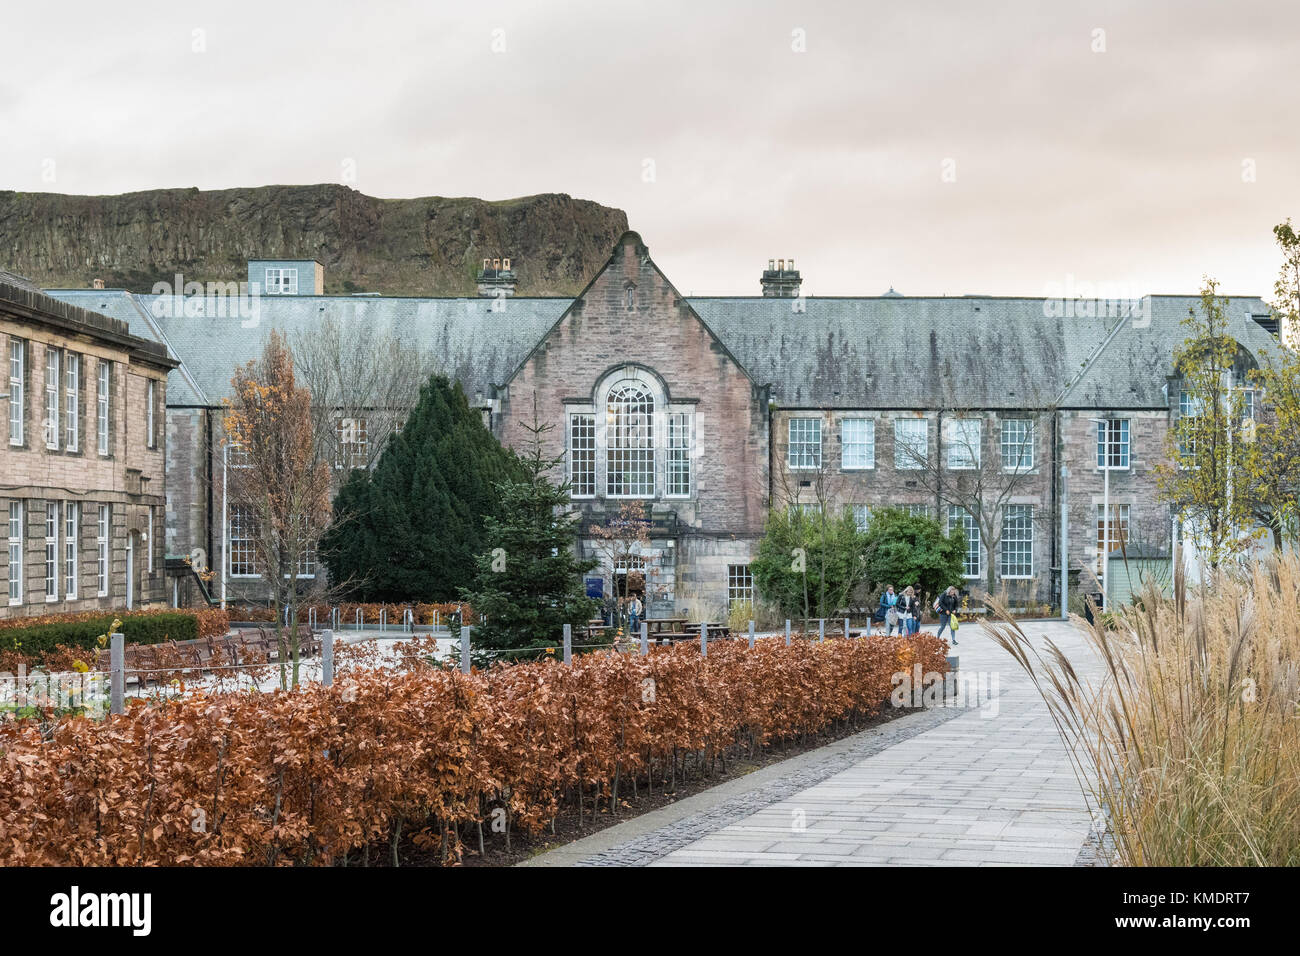 Moray House School of Education, Edinburgh University, Scotland, UK - Stock Image